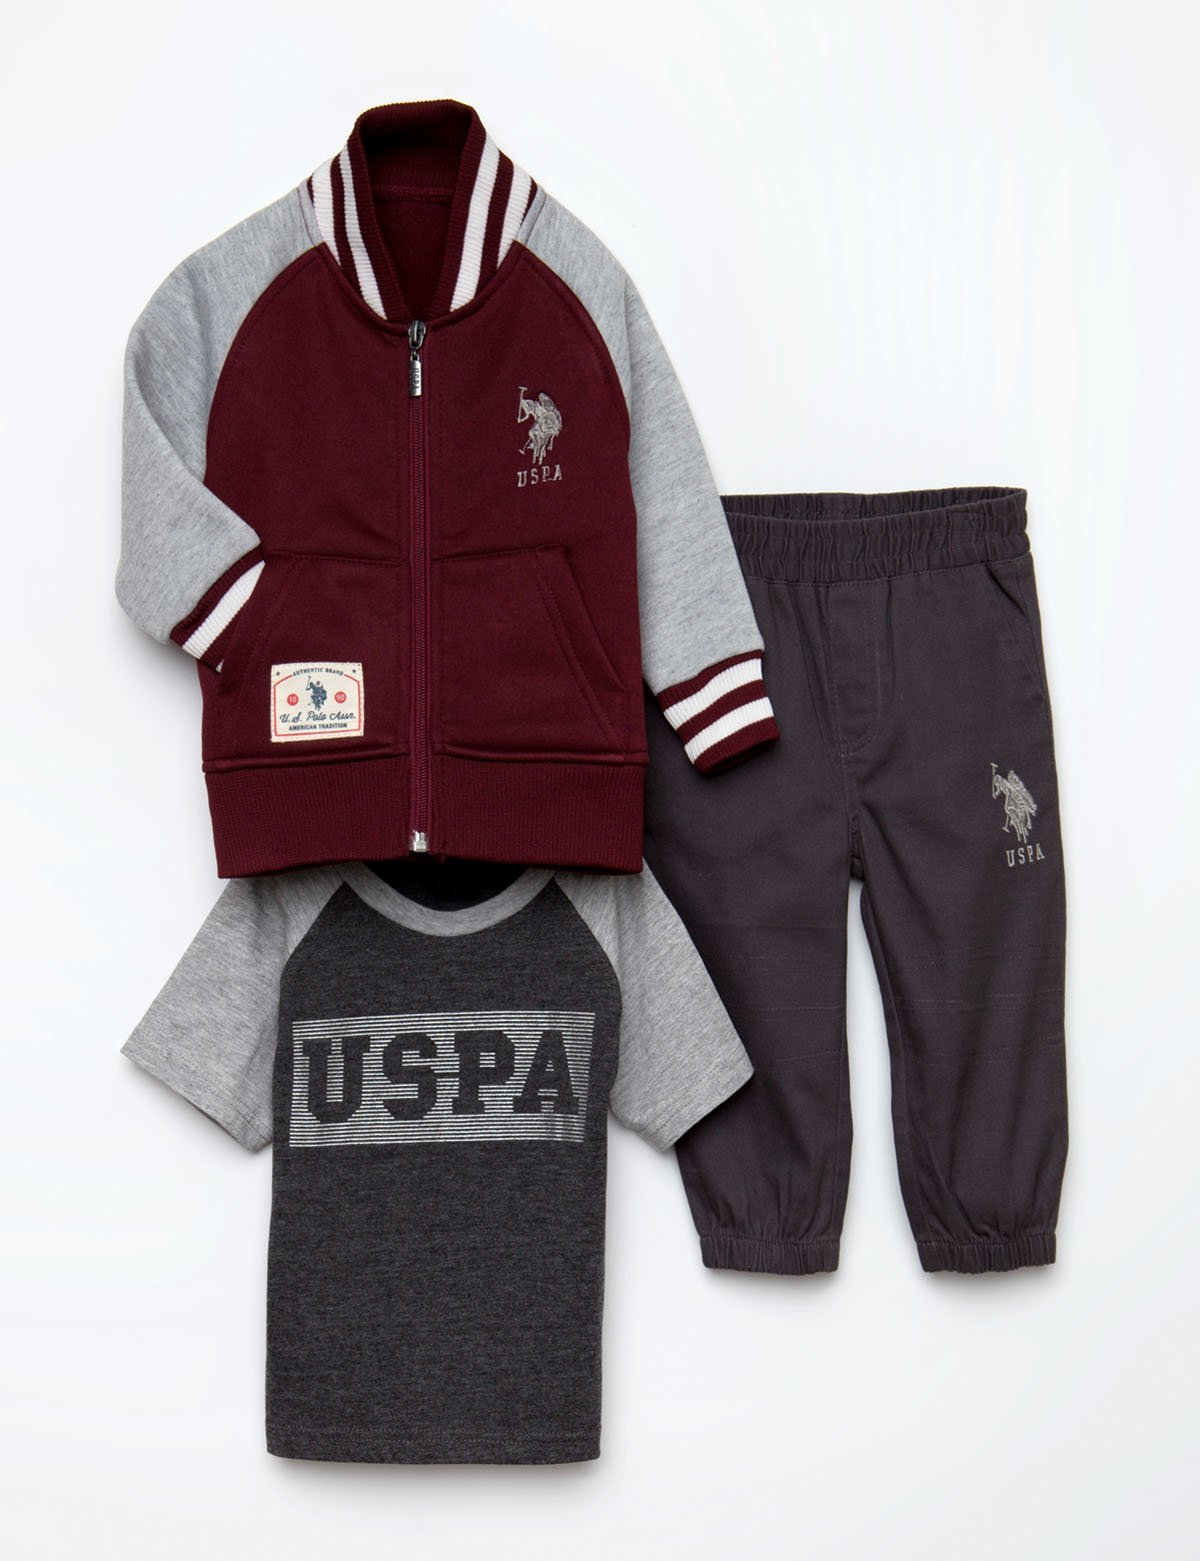 BOYS 3 PIECE SET - FLEECE, TEE & PANTS